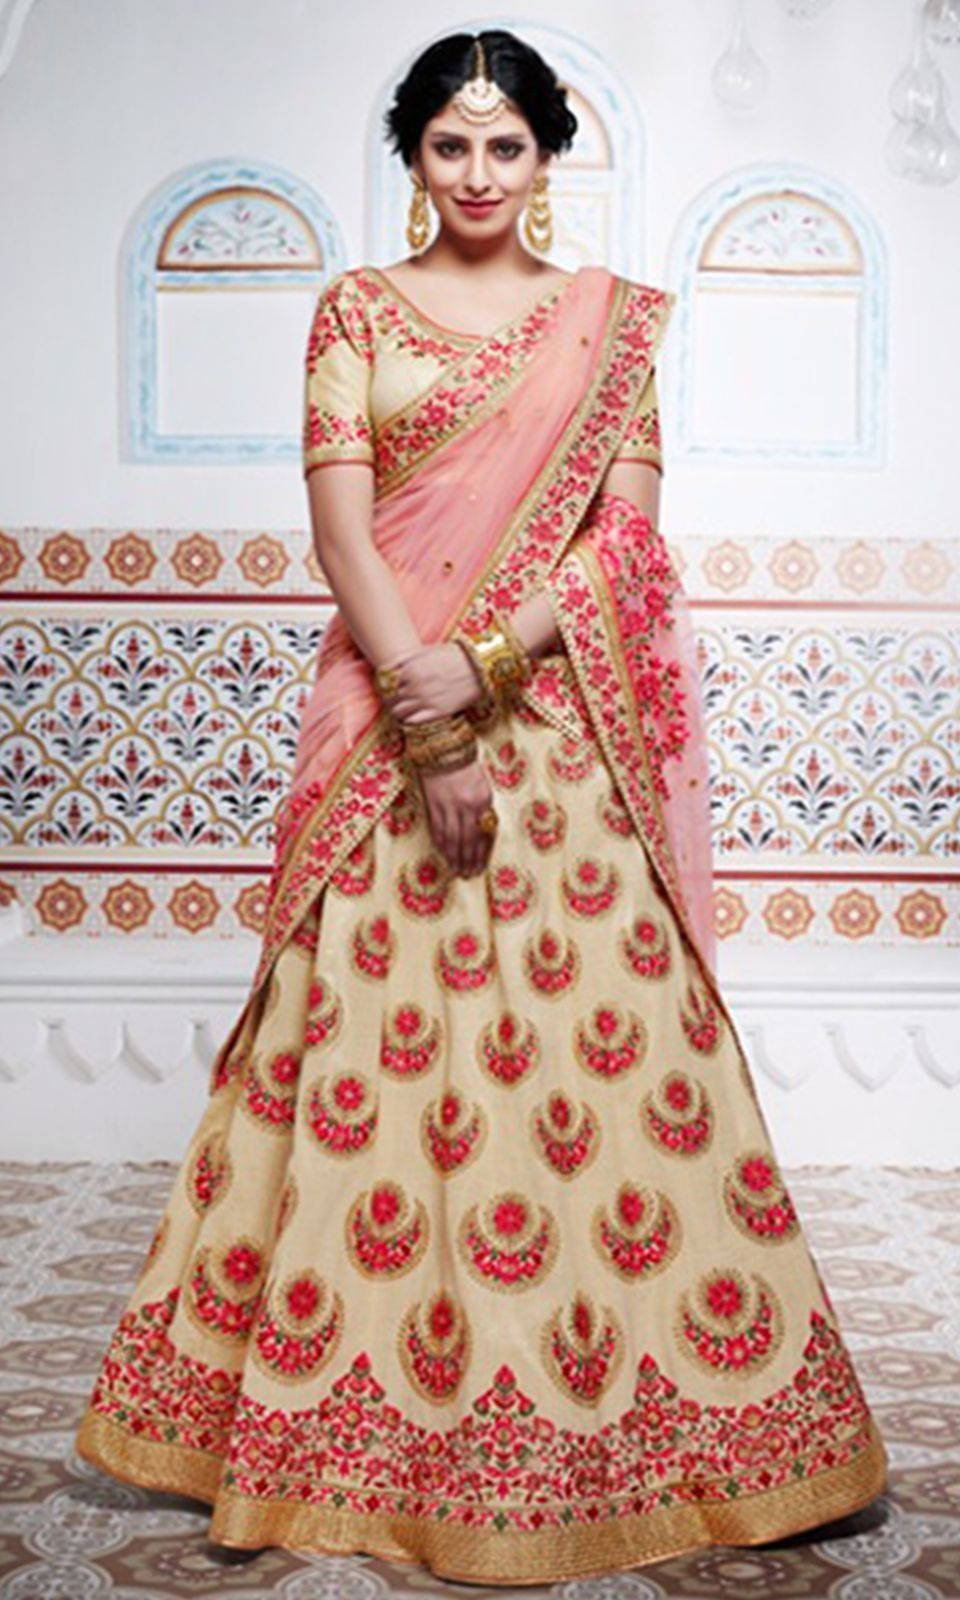 6abc2c1ed7 Shop this stunning #Beige and #Peach #Party Wear #Lehenga #Saree (SKU Code  : LEHNK5100) Online at IshiMaya Fashion.